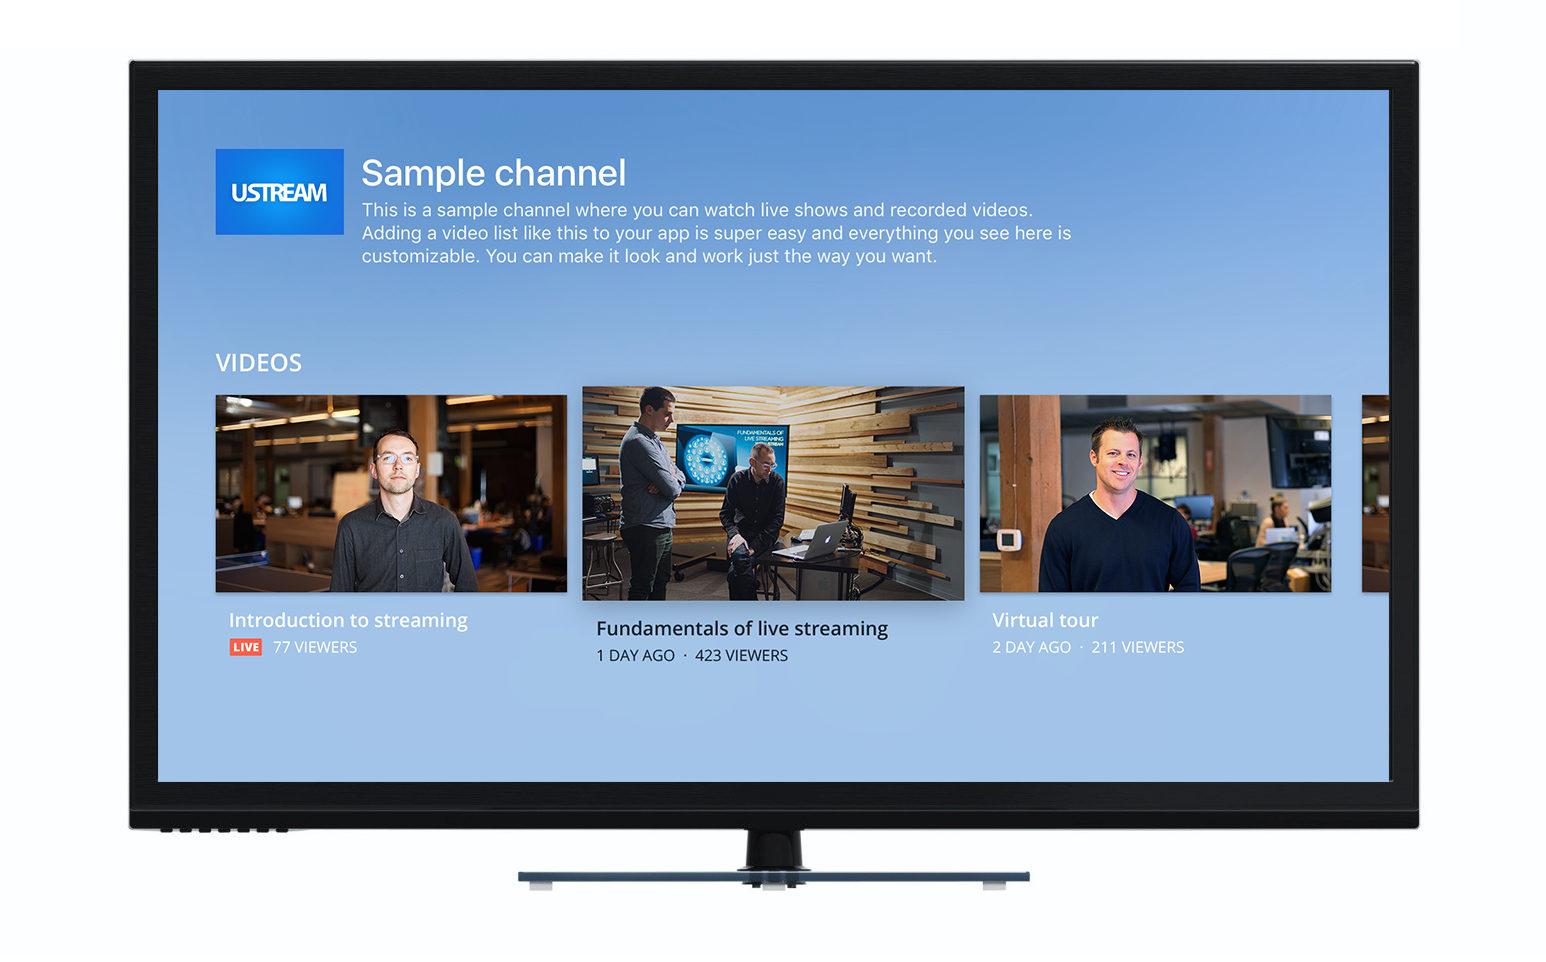 SDK Launched for Apple tvOS | IBM Cloud Video